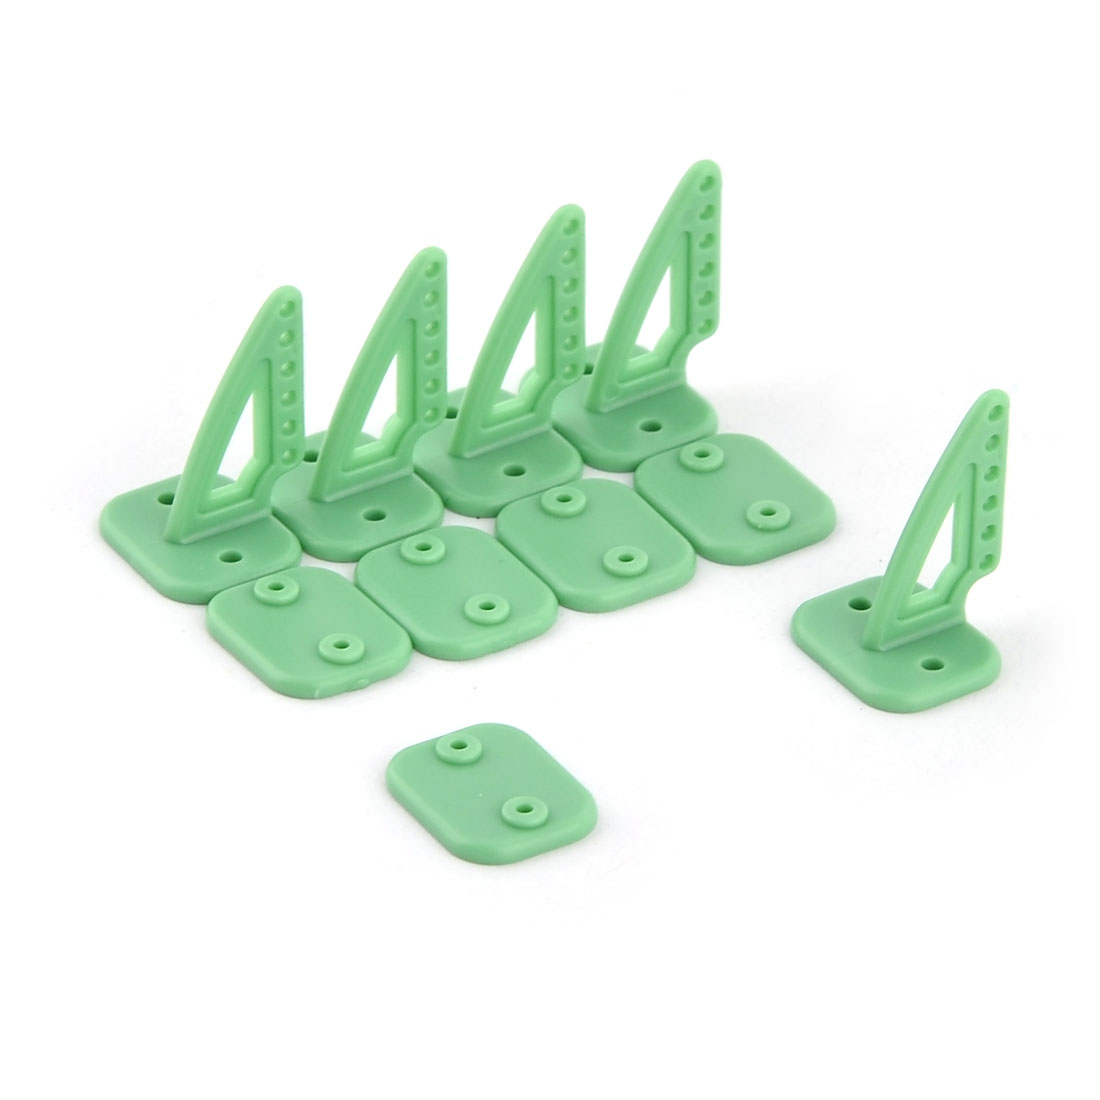 5 PCS RC Model Airplane DIY Assembly Parts 20mm x 27mm Rudder Angle Green